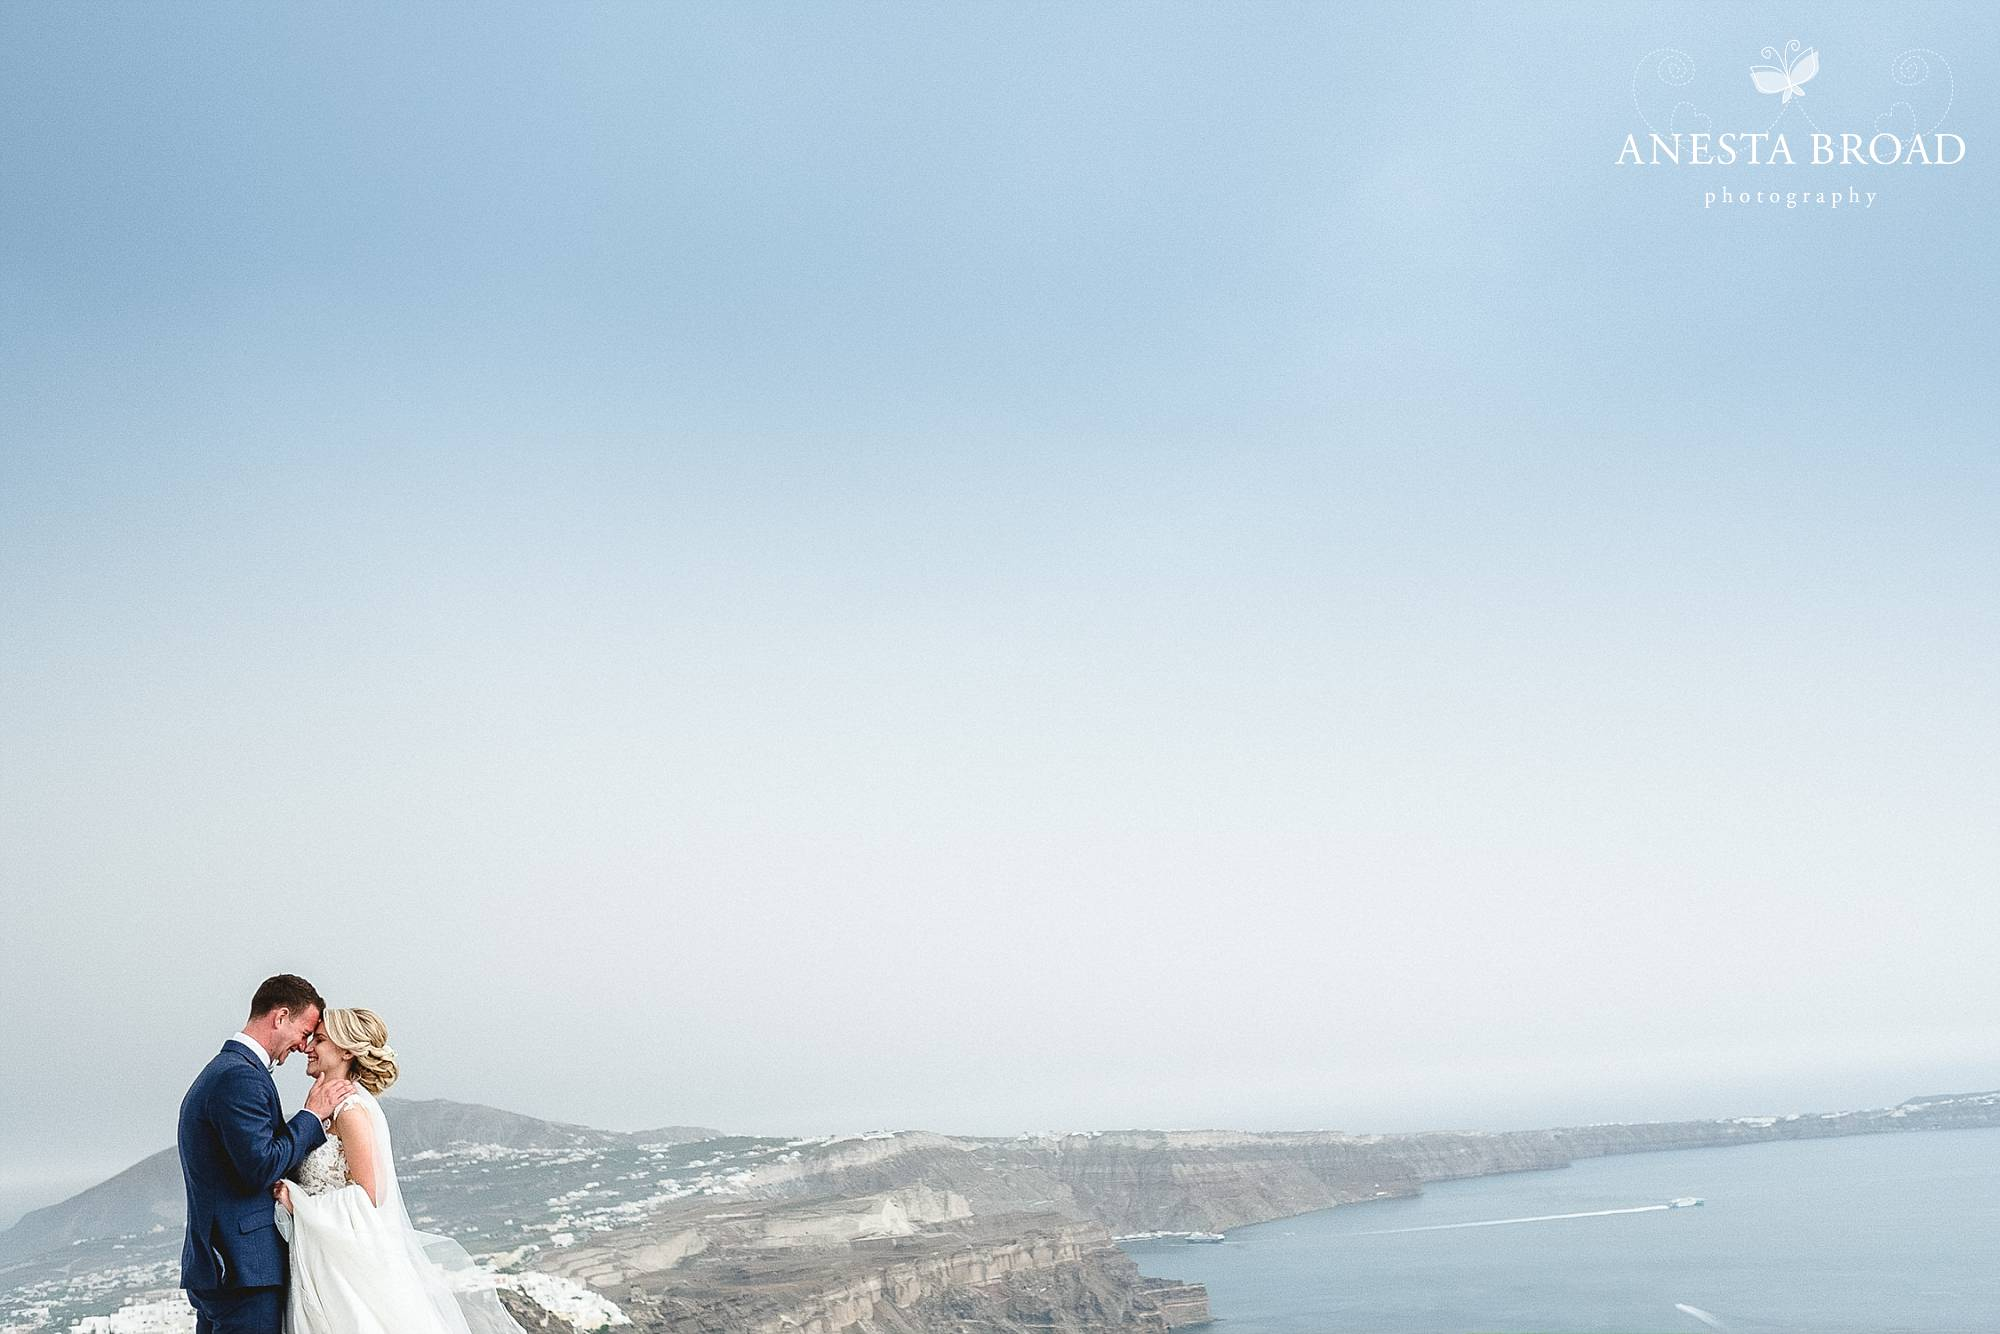 Santorini-Wedding-Photographer-94-1.jpg